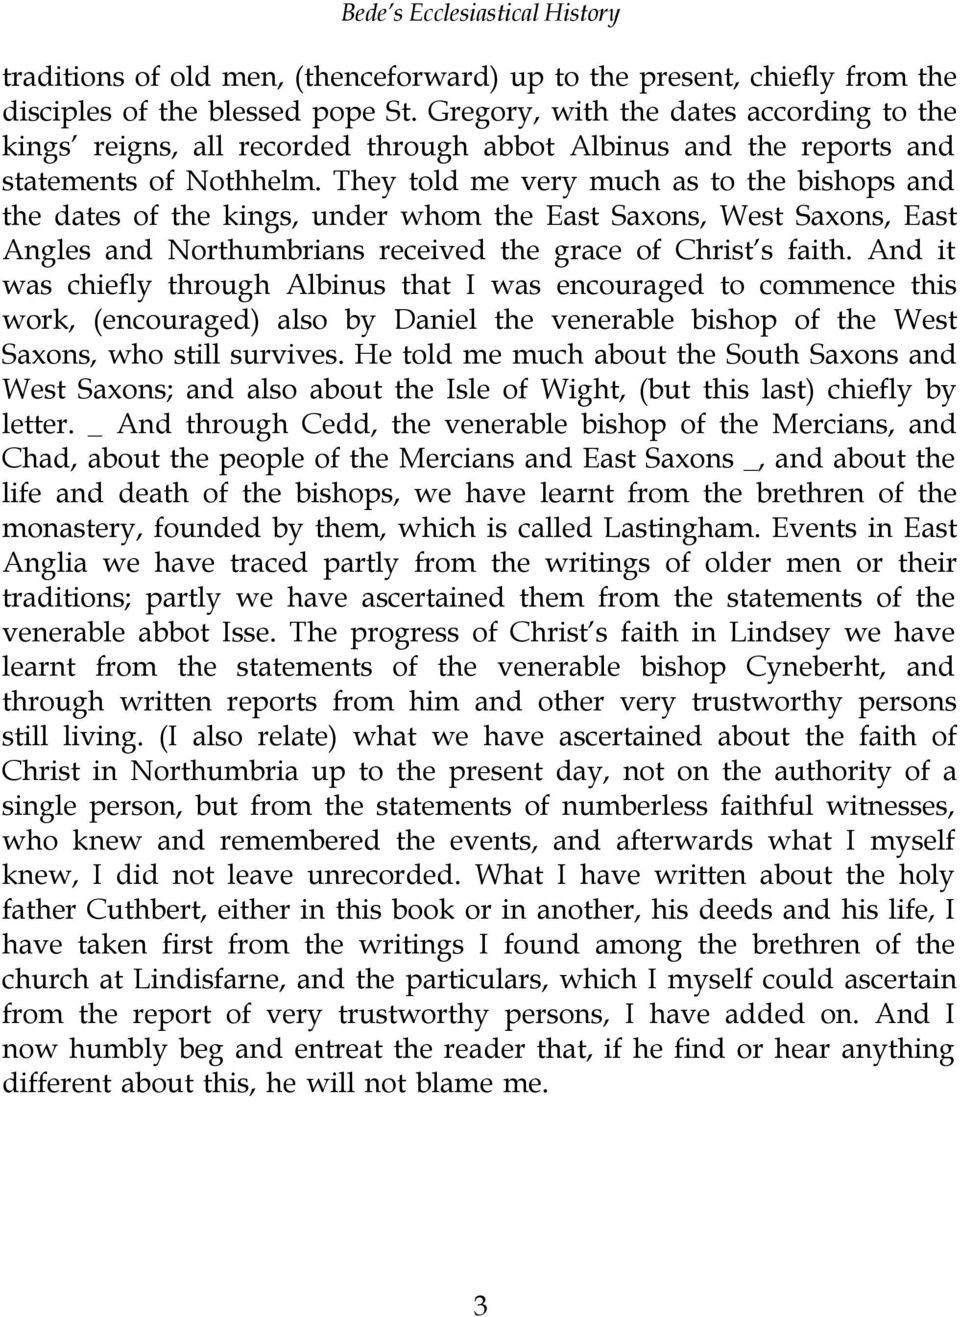 They told me very much as to the bishops and the dates of the kings, under whom the East Saxons, West Saxons, East Angles and Northumbrians received the grace of ChristÕs faith.